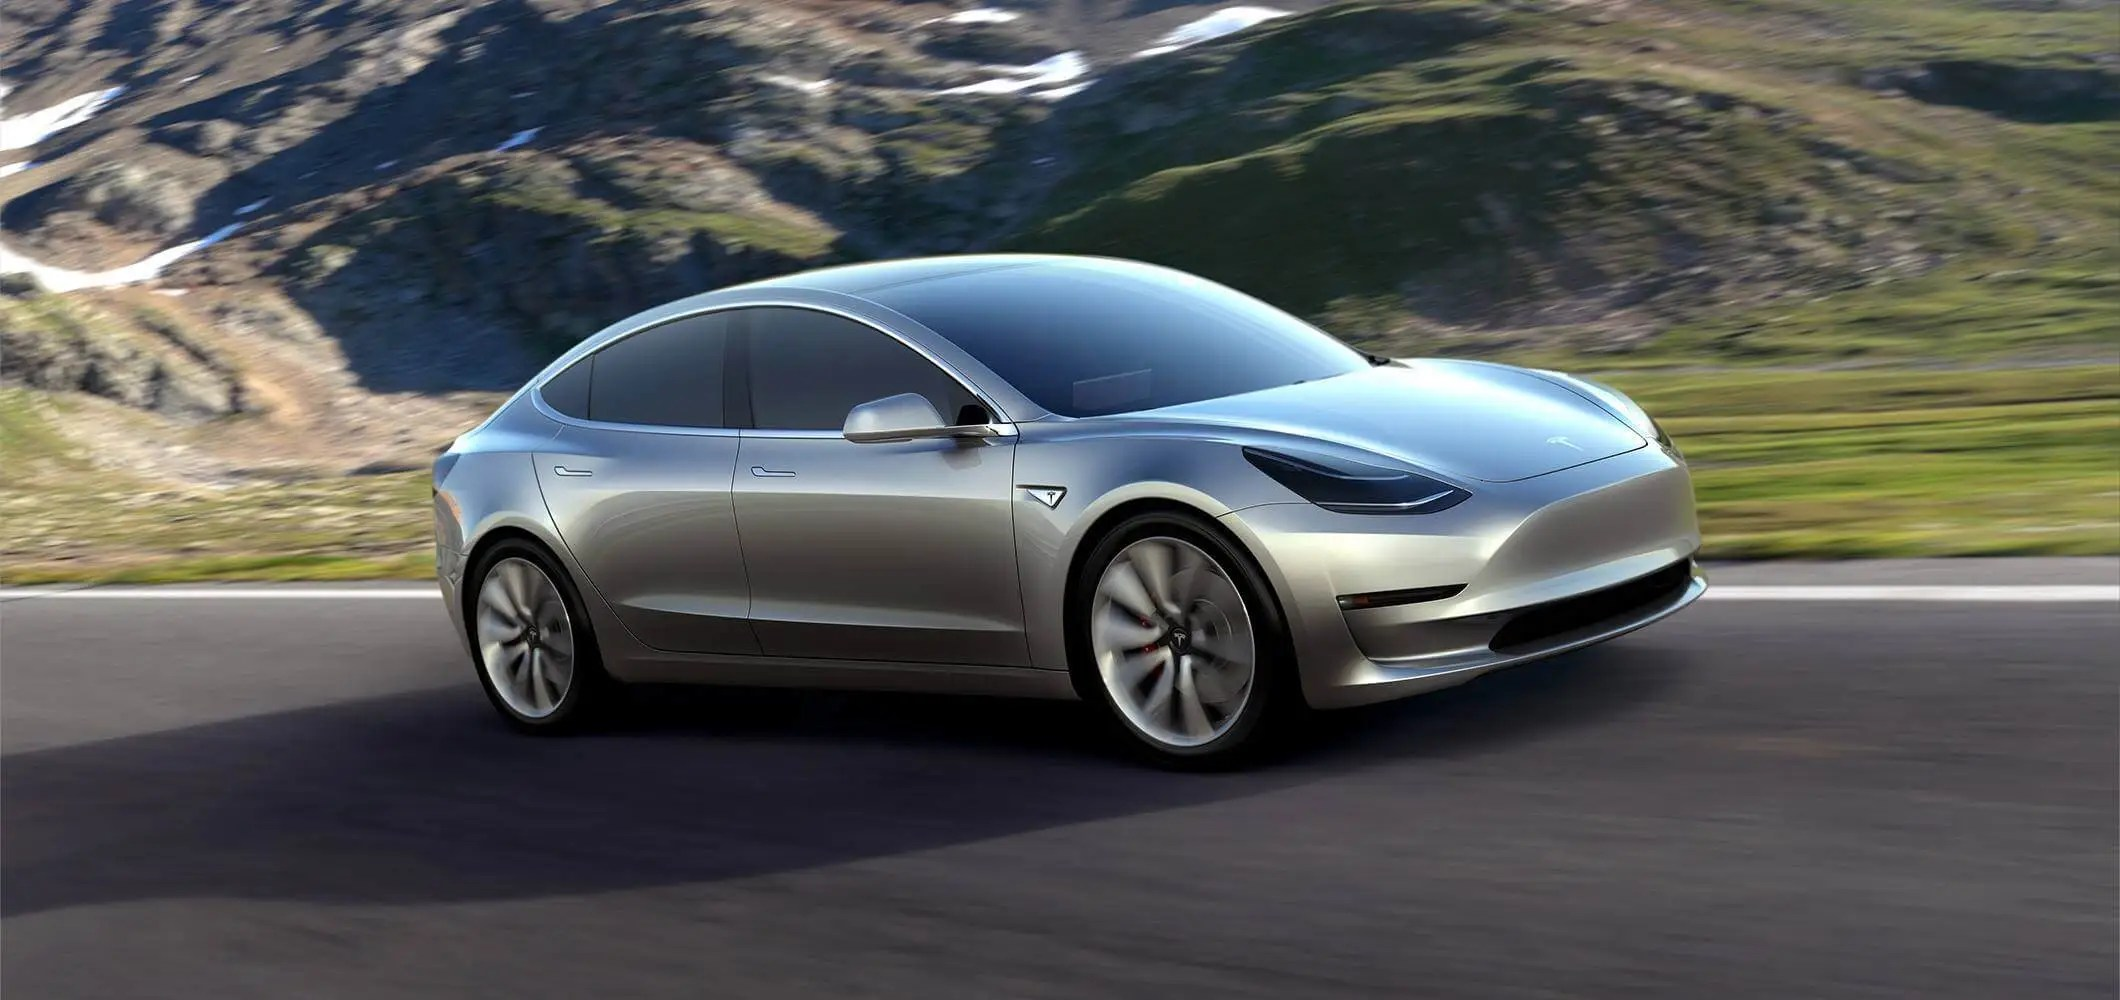 3. The Model 3 has a starting range of 215 miles, which should accommodate most people's commutes.